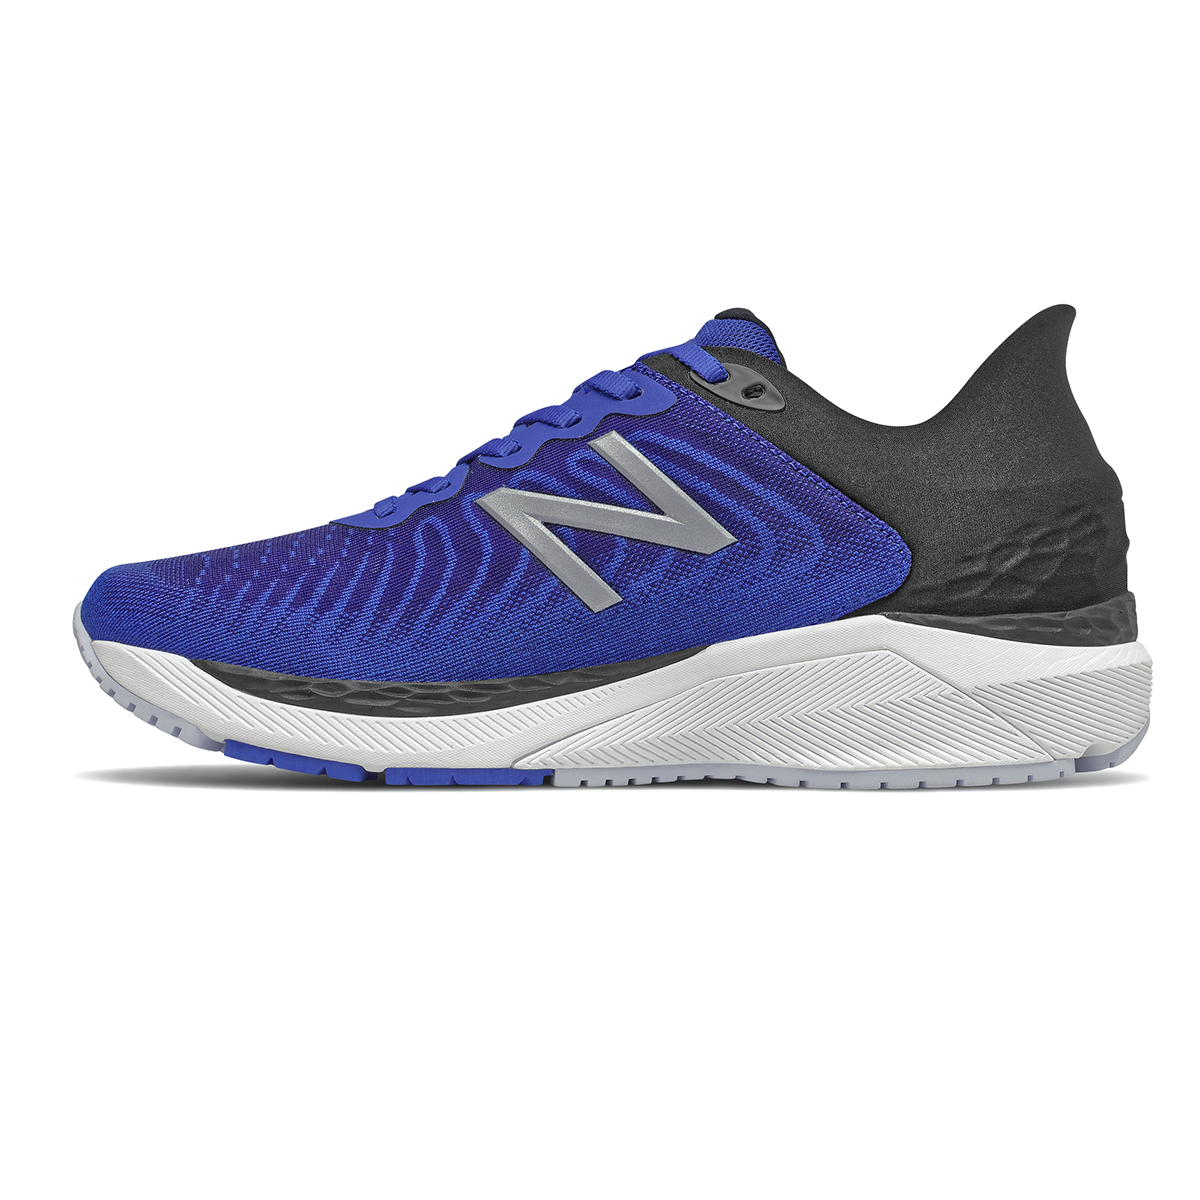 Men's New Balance 860V11 Running Shoe - Color: Team Royal - Size: 7 - Width: Wide, Team Royal, large, image 2